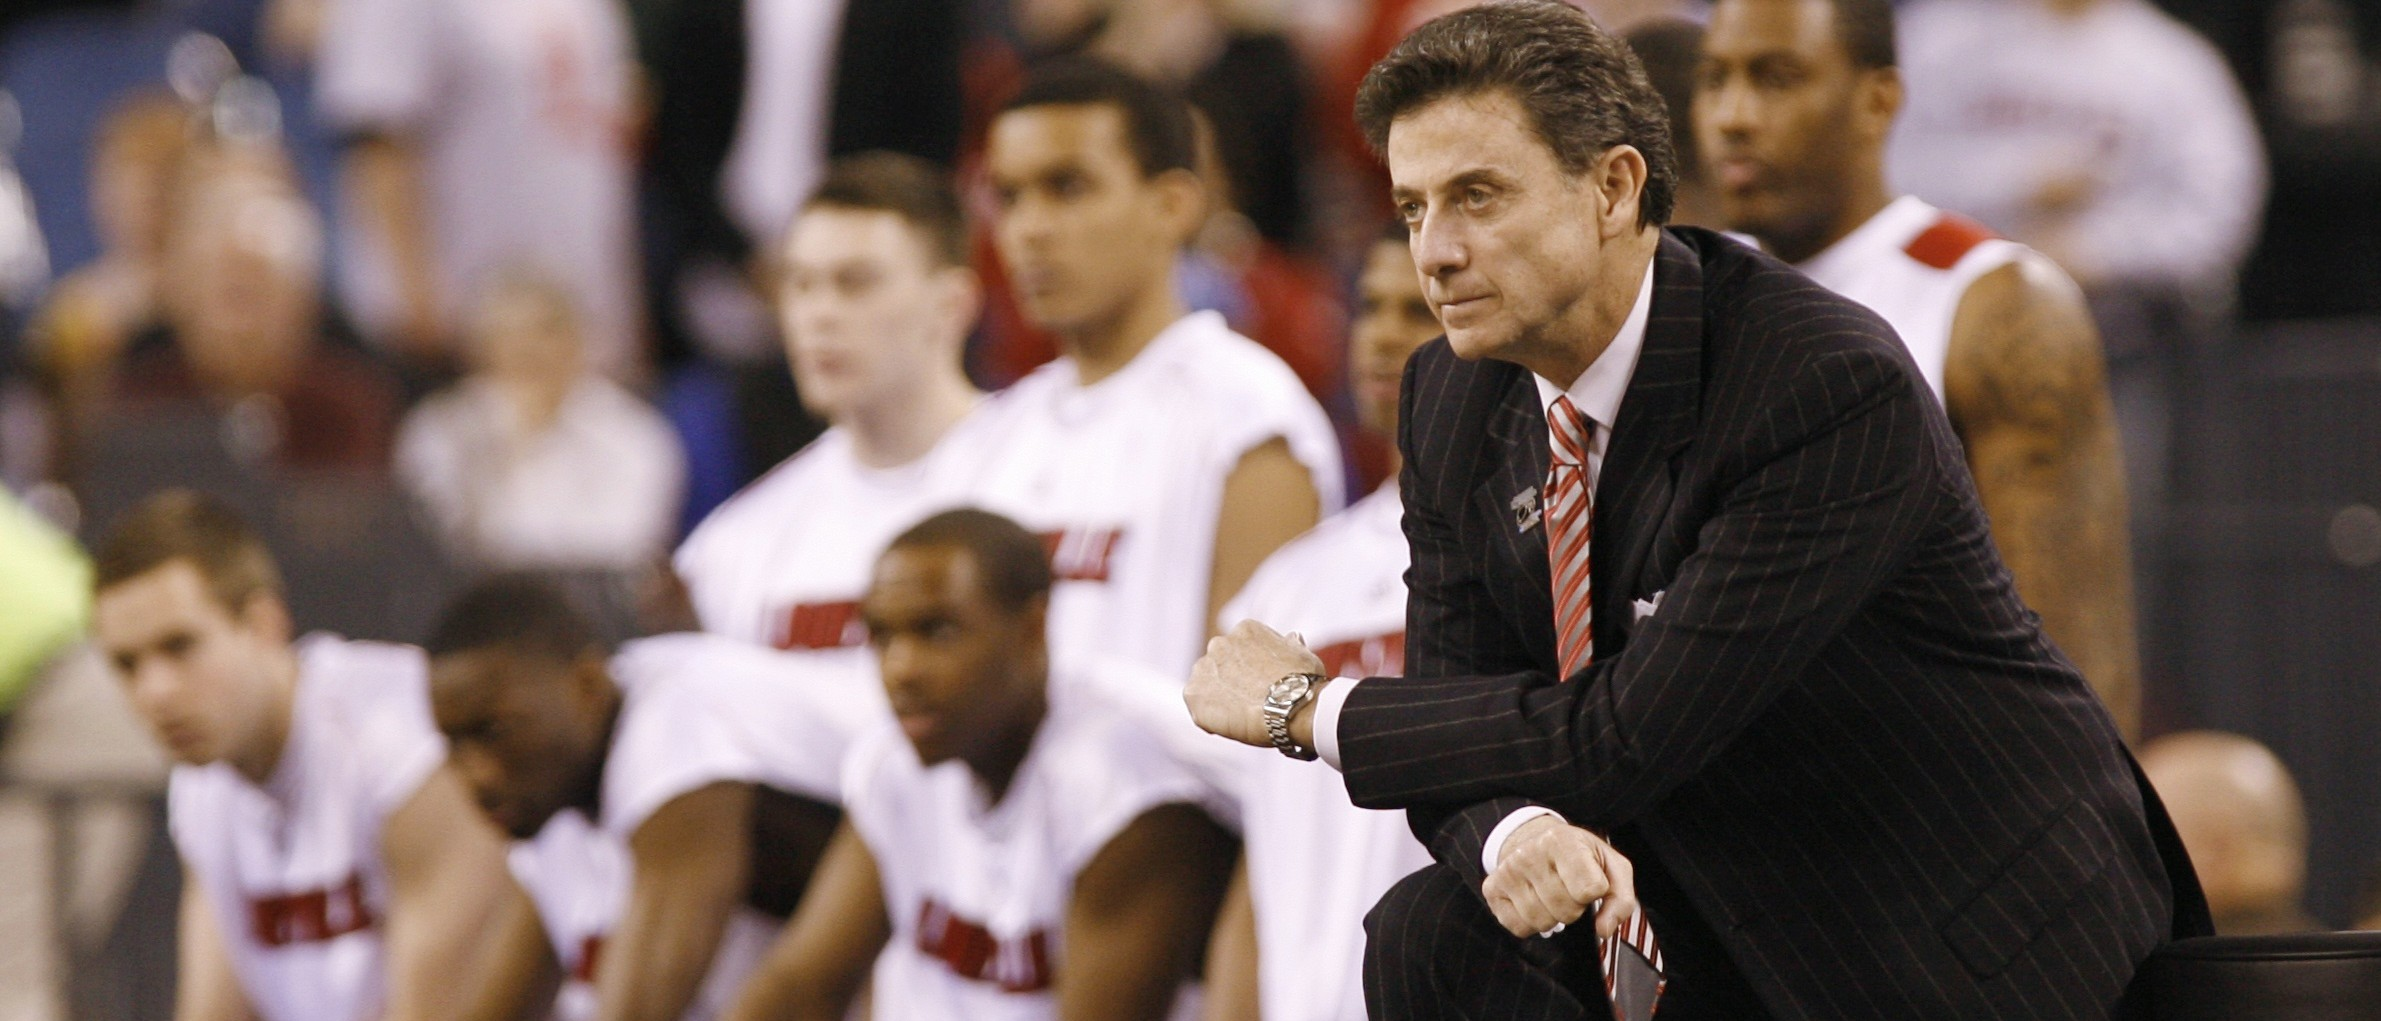 Louisville Cardinals coach Rick Pitino kneels on the sidelines as his team plays the Arizona Wildcats during the first half of their NCAA men's Midwest Regional basketball game in Indianapolis, Indiana, March 27, 2009. REUTERS/Jeff Haynes (UNITED STATES SPORT BASKETBALL) - RTXDARP